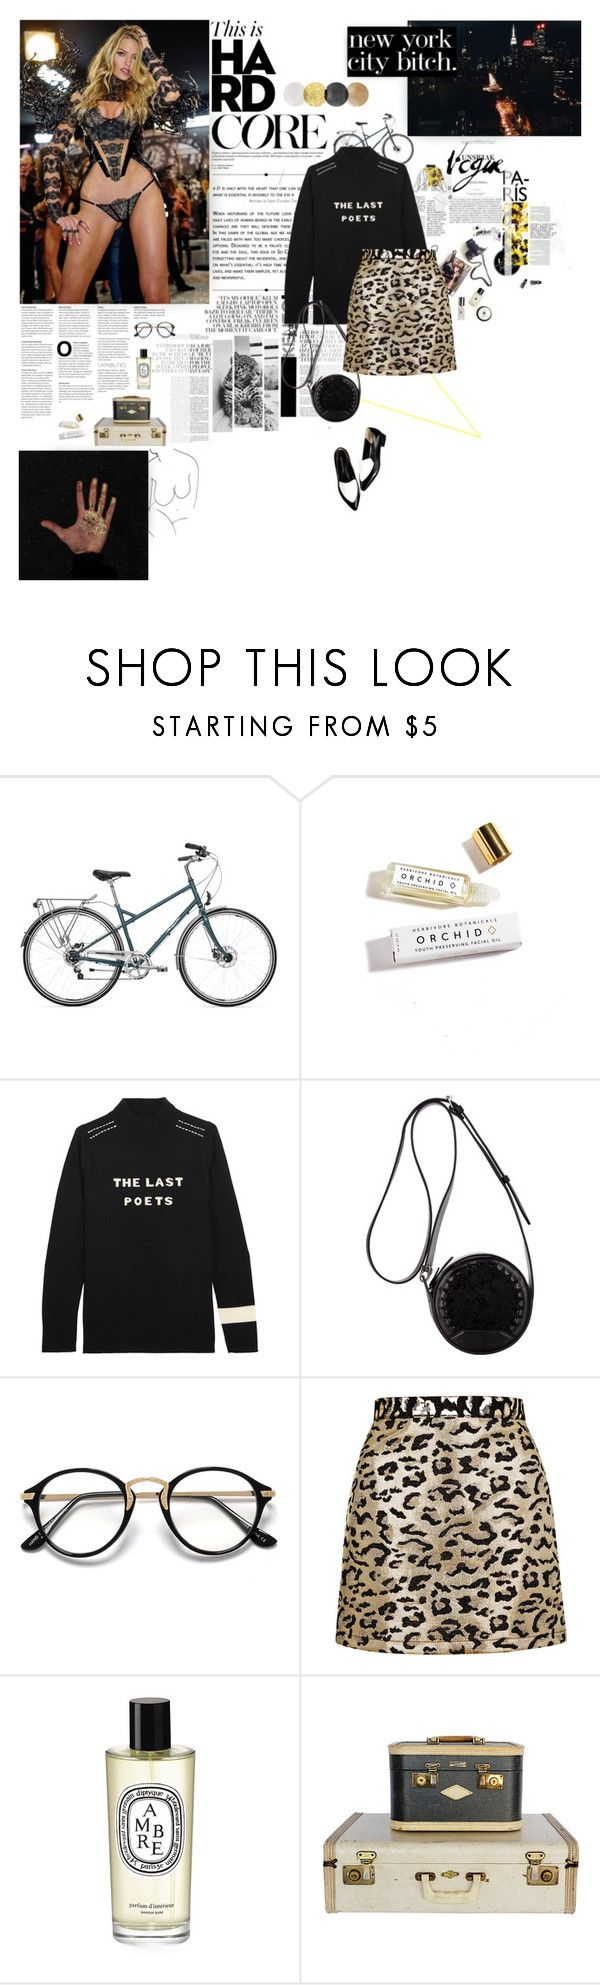 """""""She's Just Like A Model, Except She's Got A Little More Ass    BBL"""" by spacelava ❤ liked on Polyvore featuring Novara, Herbivore, Bella Freud, 3.1 Phillip Lim, Topshop, Diptyque, living room, bedroom, kitchen and bathroom"""